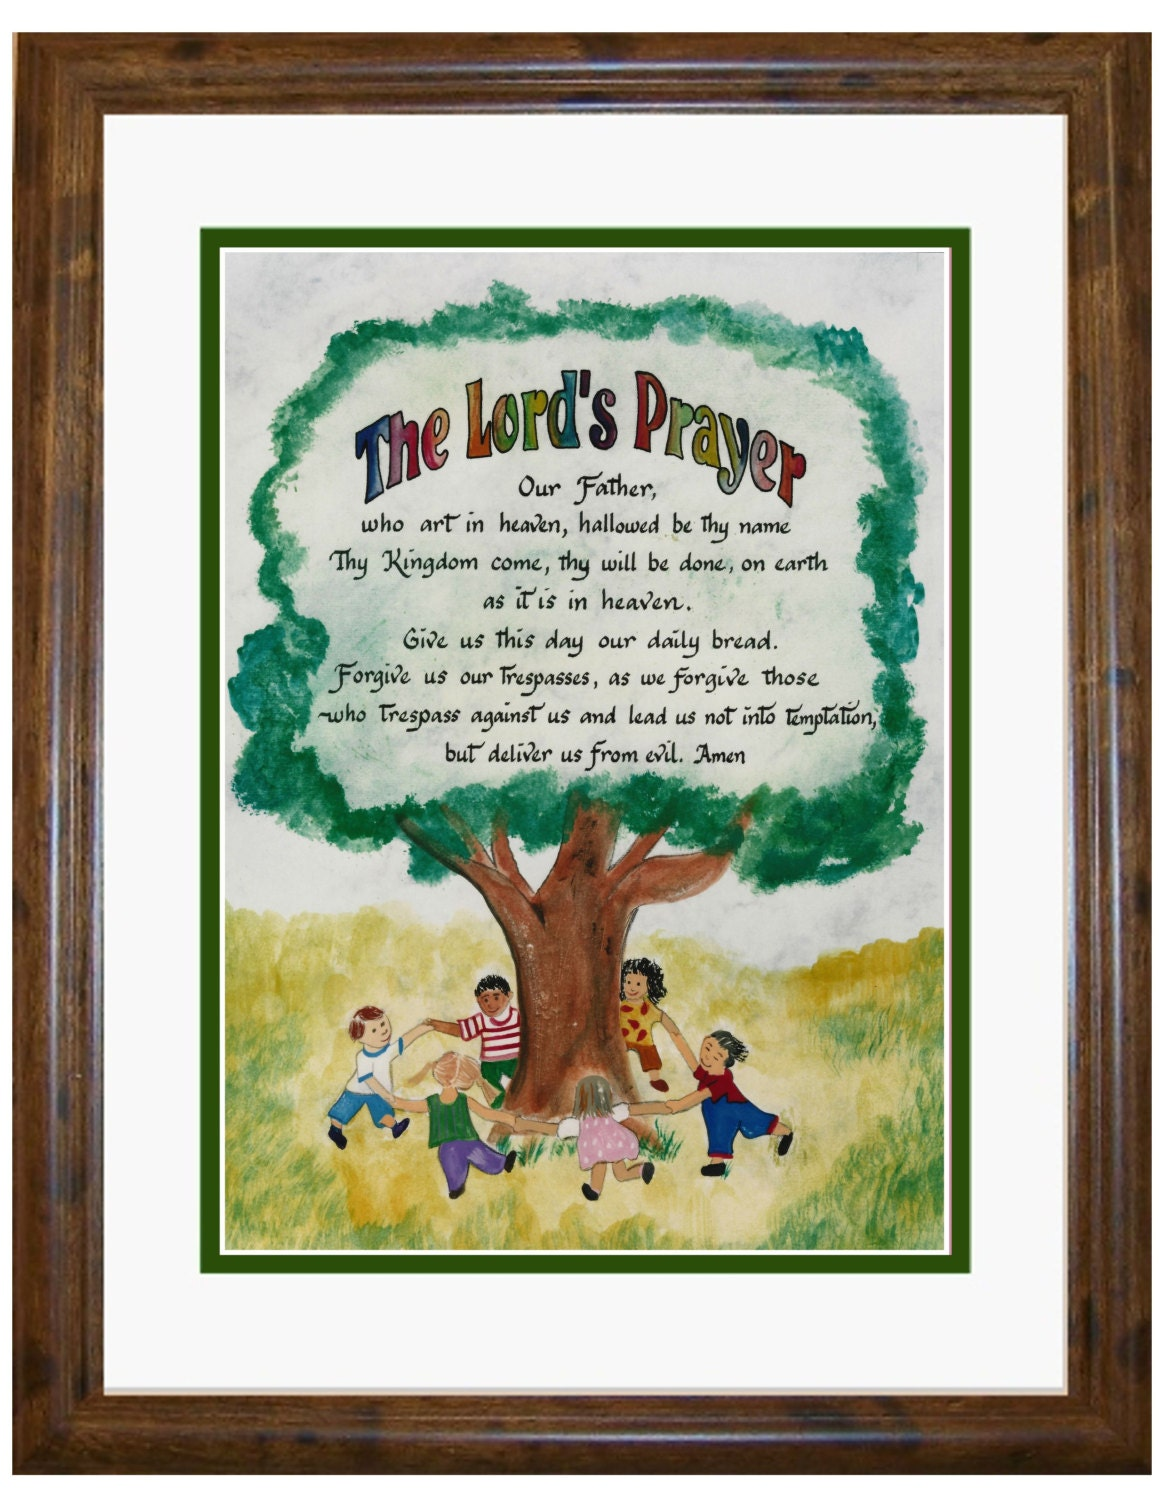 childrens lords prayer calligraphy and art picture